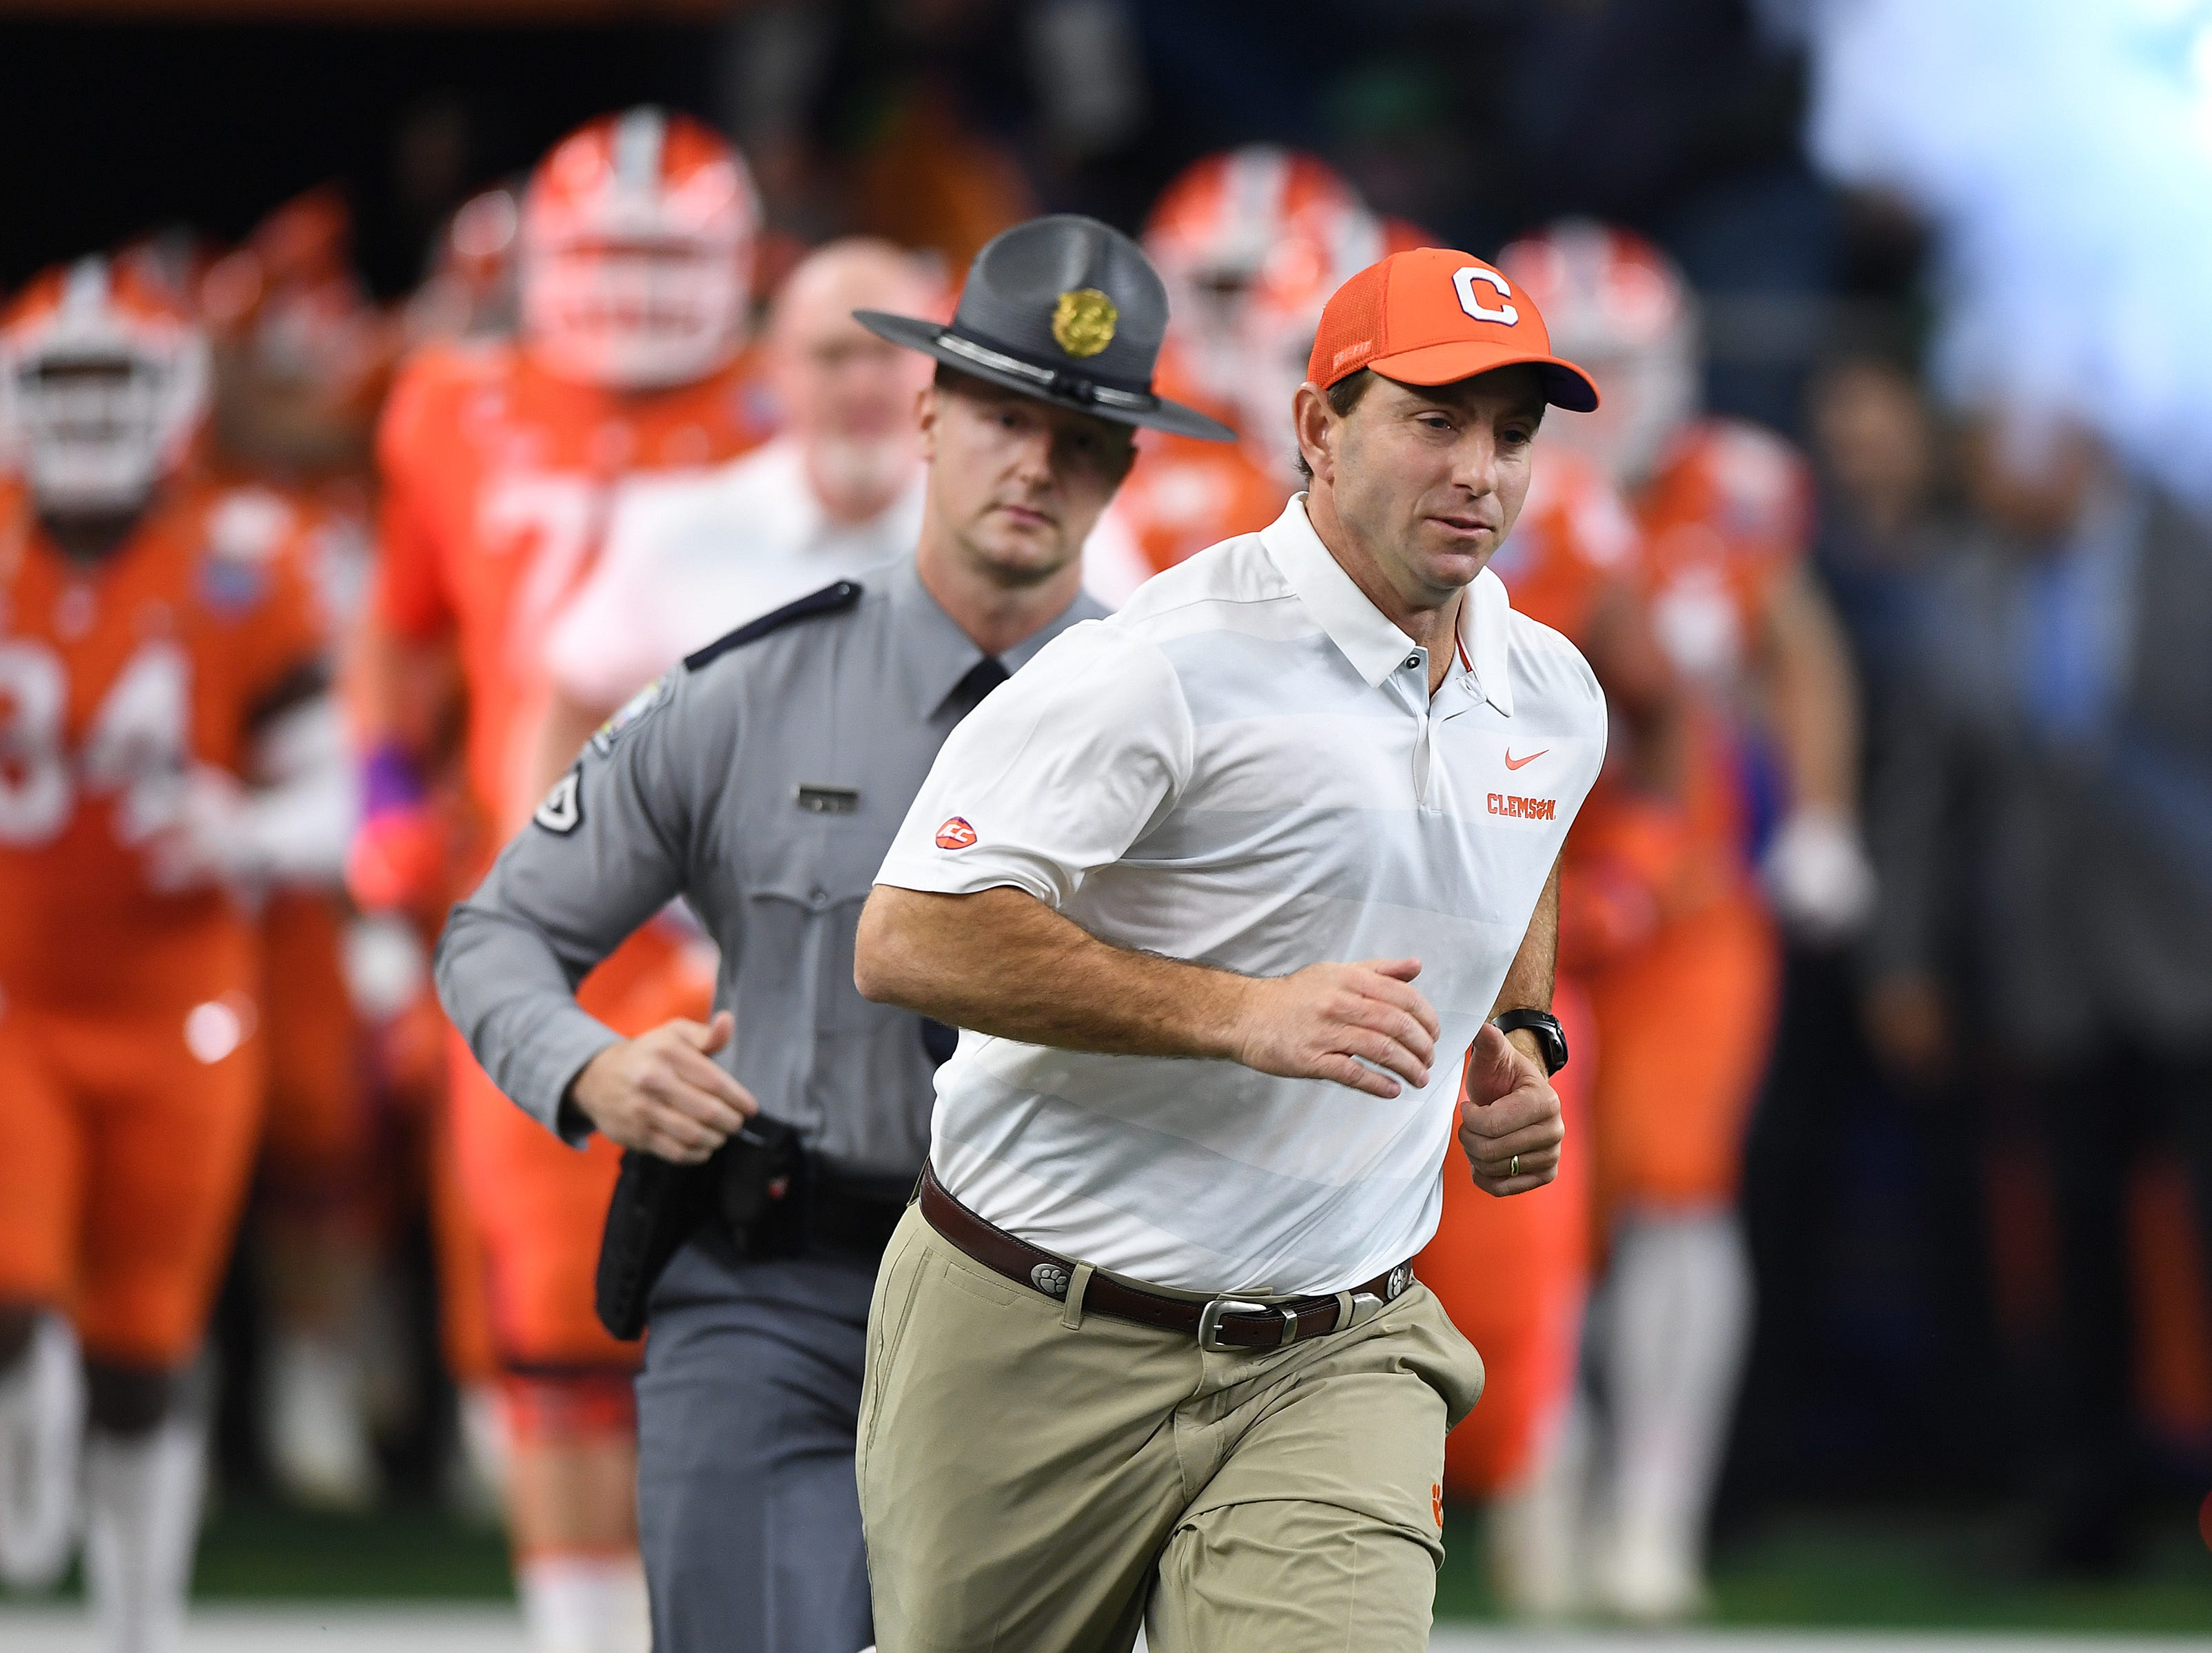 Clemson head coach Dabo Swinney leads his team onto the field during pregame of the Goodyear Cotton Bowl at AT&T stadium in Arlington, TX Saturday, December 29, 2018.